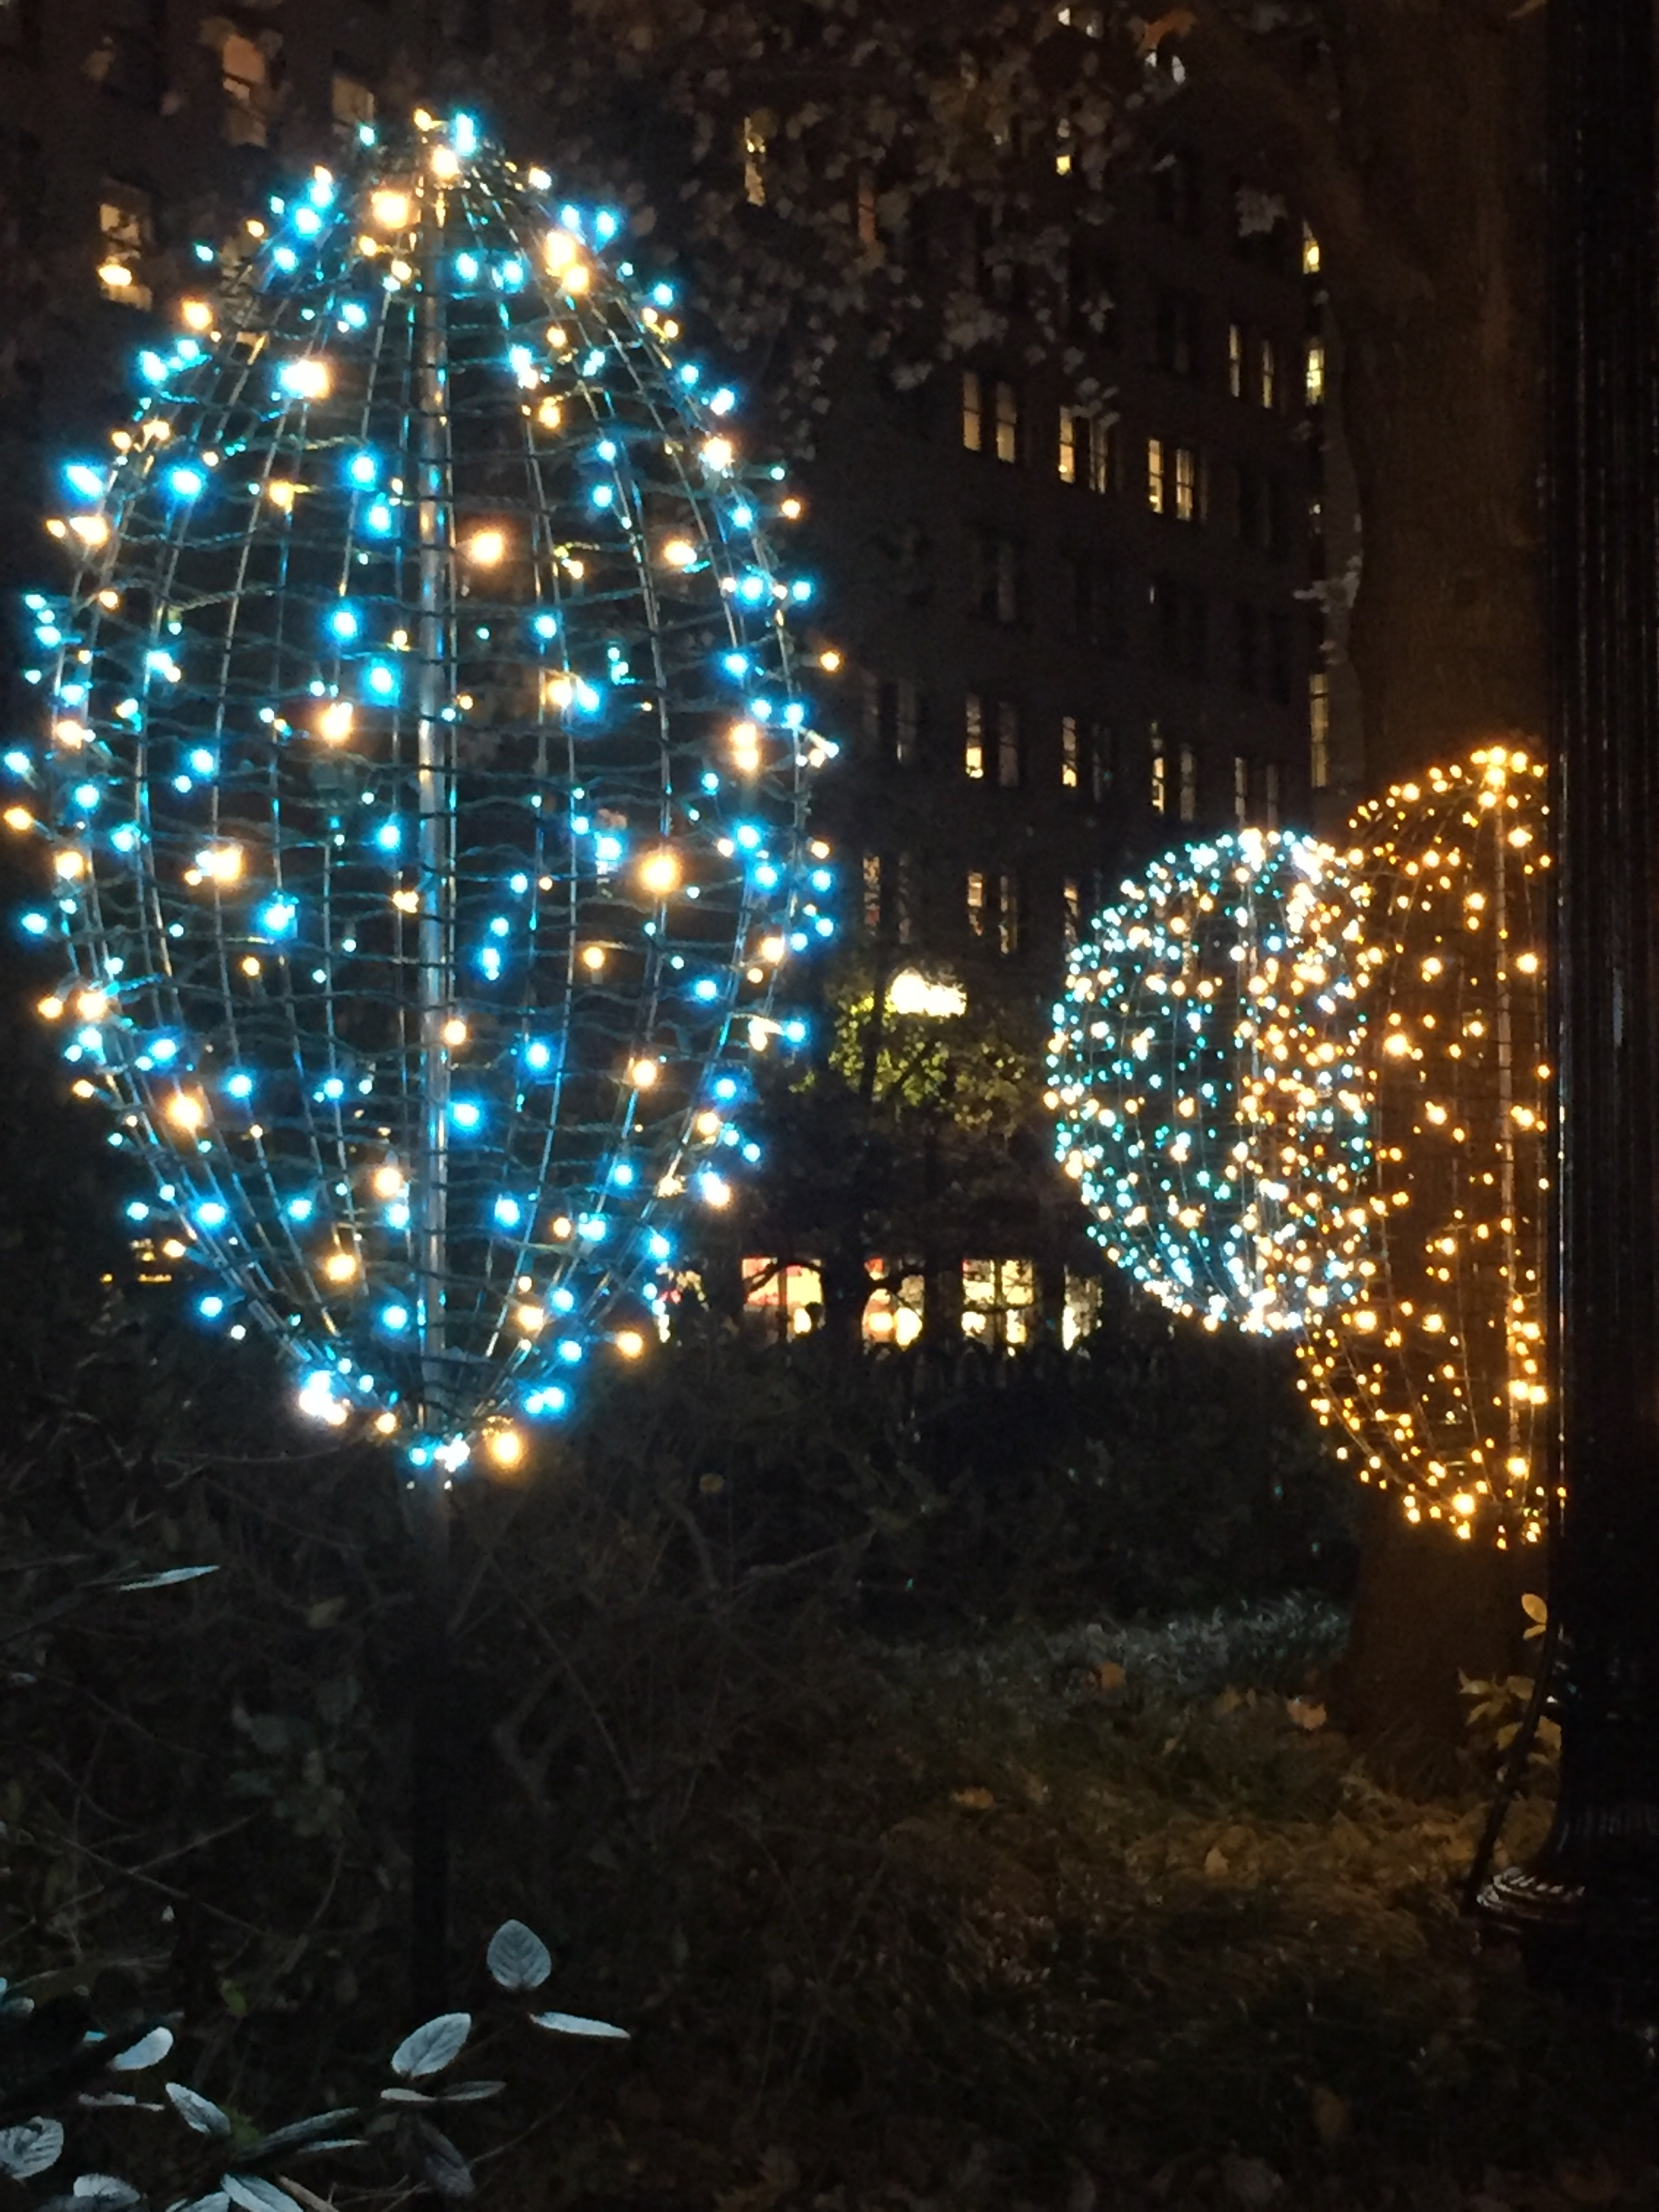 Come See Our New Winter Lights Norman B Leventhal Park